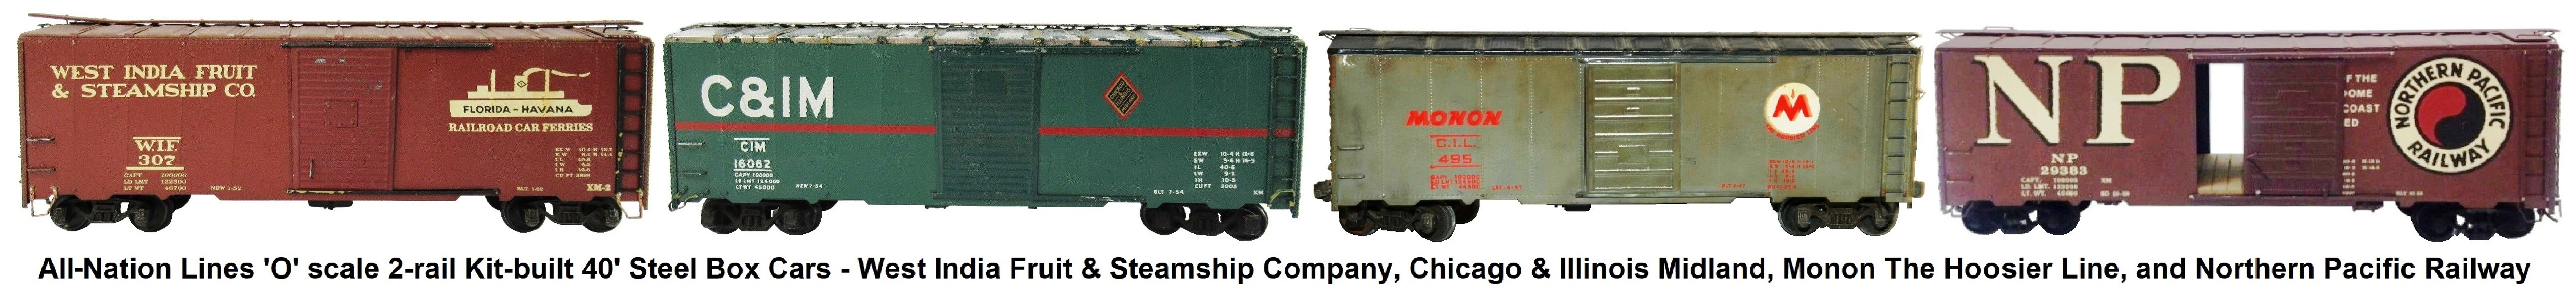 All-Nation 'O' scale 40' Steel Box Cars Kit-built into West India Fruit & Steamship Co., Chicago & Illinois Midland, Monon The Hoosier Line and Northern Pacific Railway Liveries